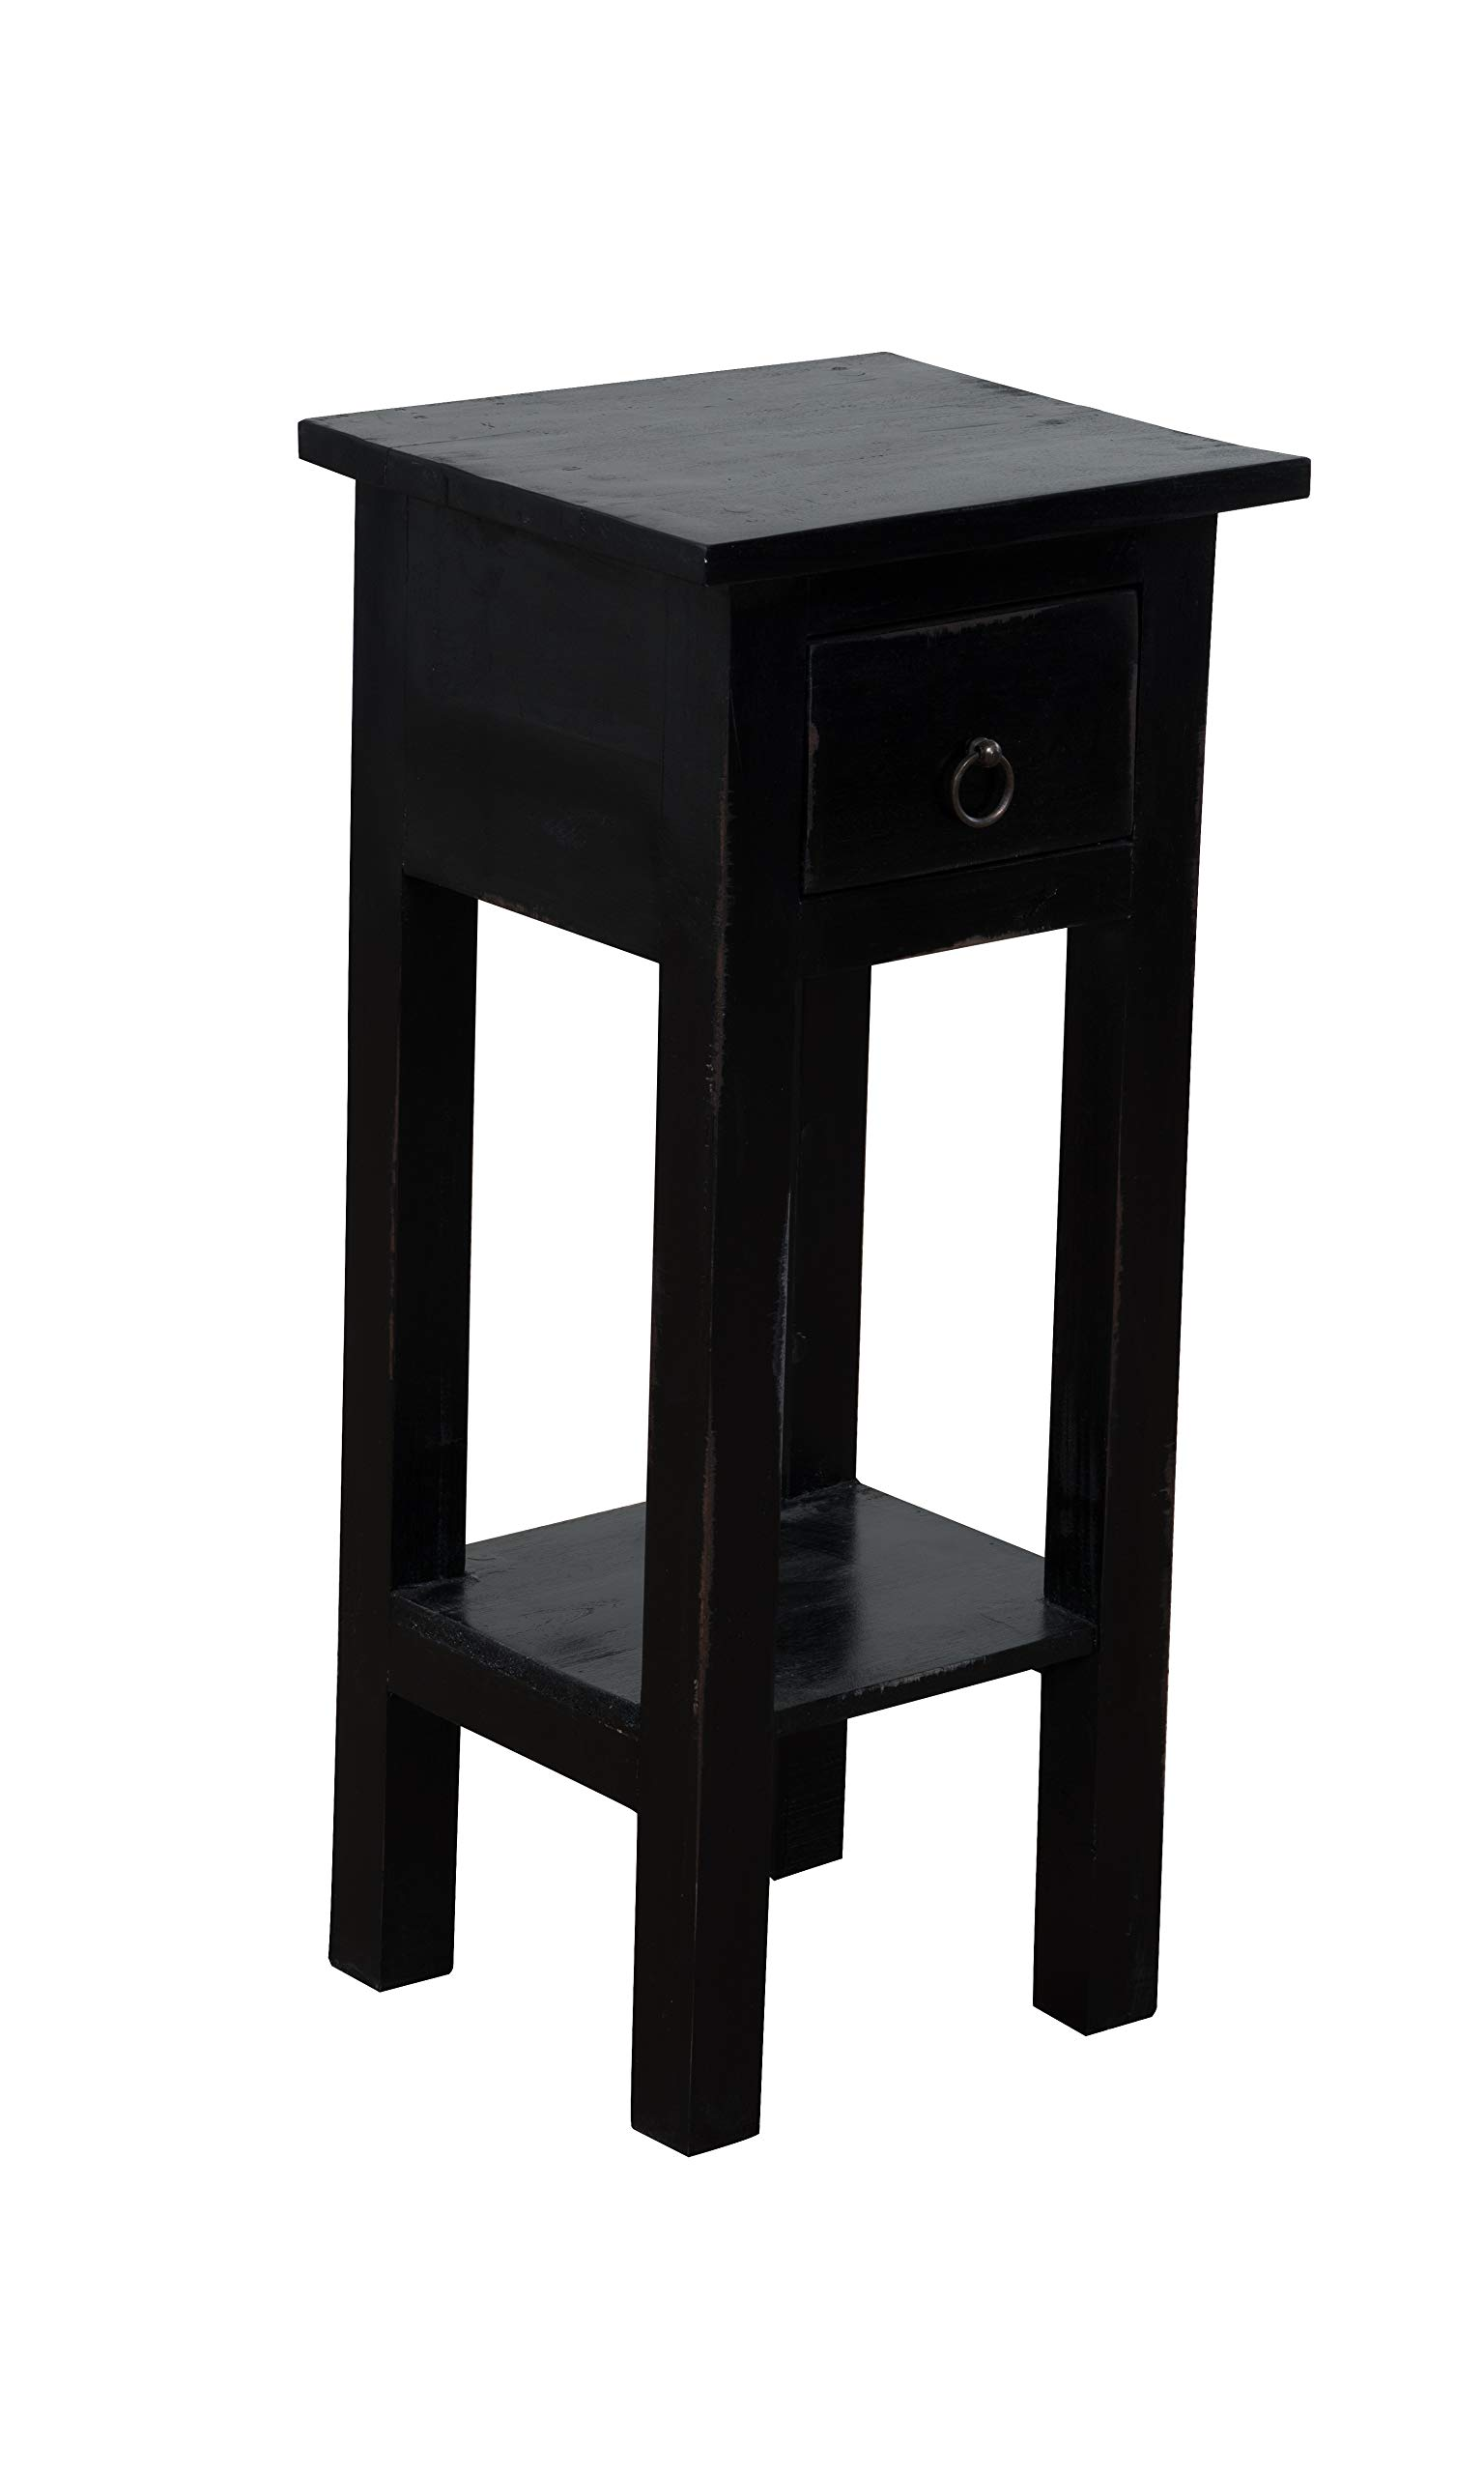 Espresso Sterling 6500525 Sutter Mahogany End Table with Drawer 27-Inch